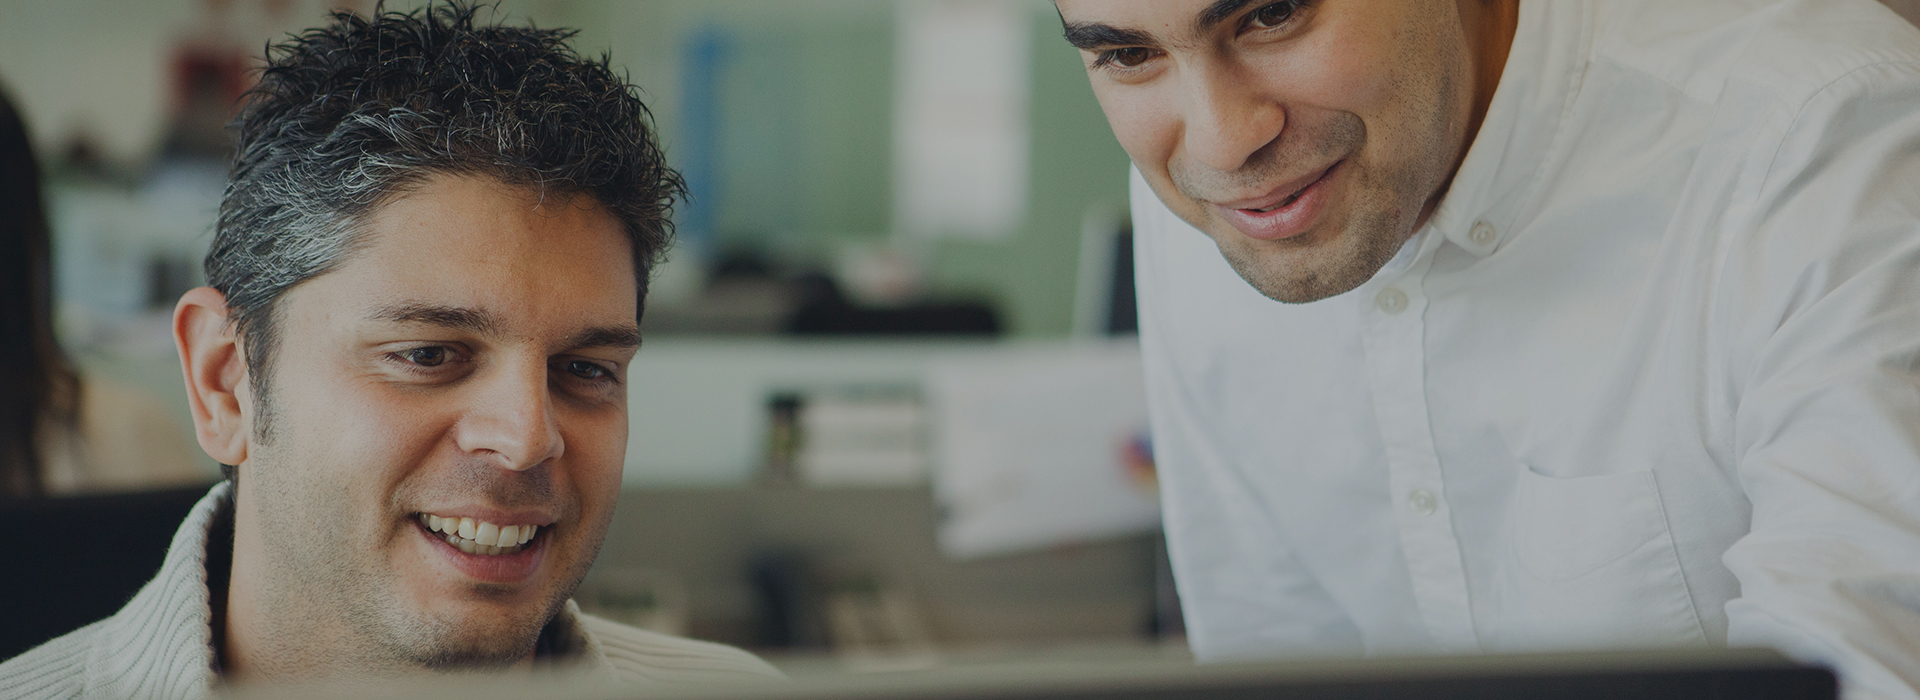 2 Unilever employees discussing work on a desktop